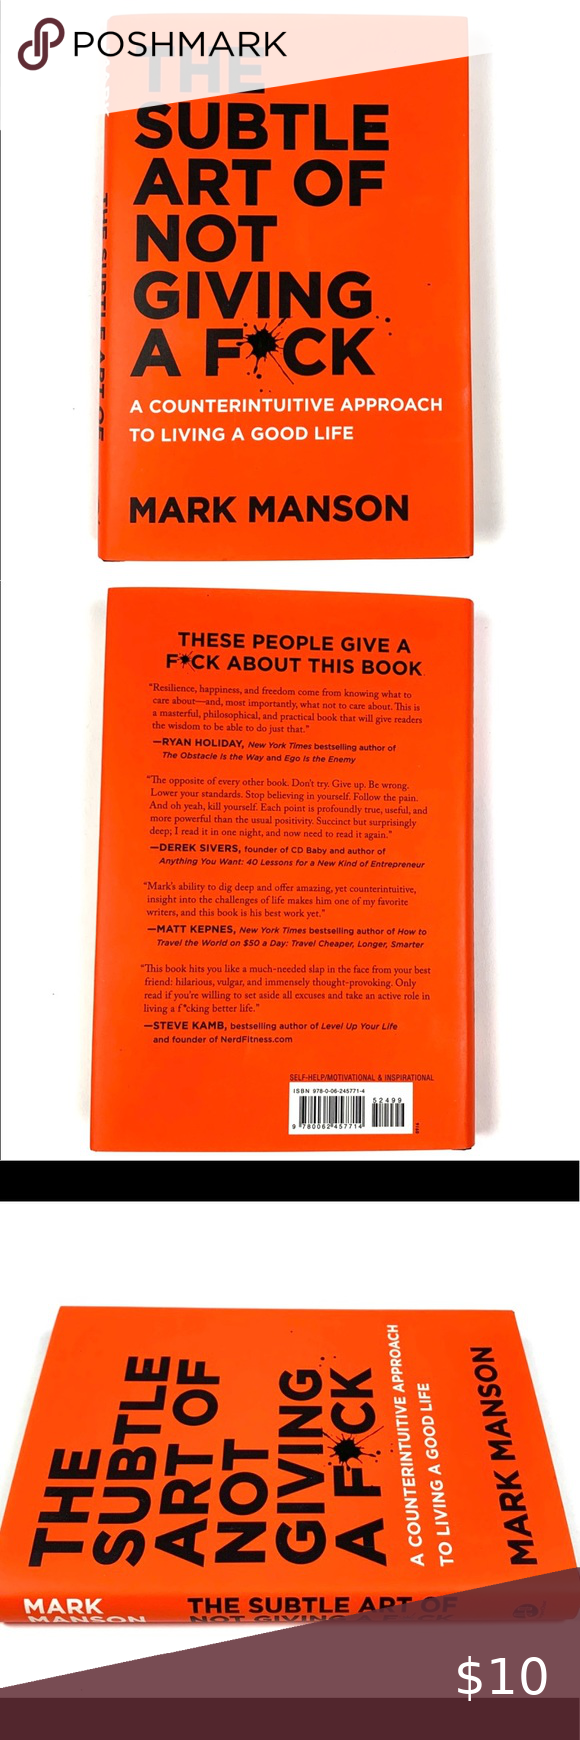 The Subtle Art Of Not Giving A F Ck Hard Cover A Counterintuitive Approach To Living A Good Life Hard Cover By Mark Manson Mark Manson Othe Subtle Cover Hard